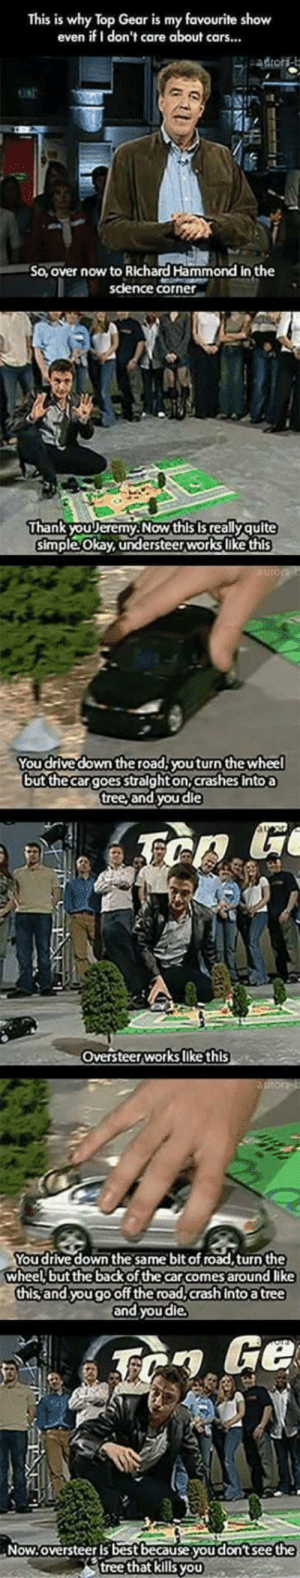 Cars, Richard Hammond, and Top Gear: This is why Top Gear is my favourite show  even if I don't care about cars...  ONE  So, over now to Richard Hammond in the  science corner  Thank youリeremy. Now this is really quite  simple Okay, understeerworks like this  You drive down the road,youturn the wheel  but thecargoes stalght on, crashes Intoa  tree, and youdie  Oversteerworks like this  You drive down the same bit of road,turn the  wheel but the back of the car comes around like  this and yougooff the road,crash Into a tree  and you die  Now.oversteer is best because.you don't see the  tree that kills yoU Understeer vs Oversteer